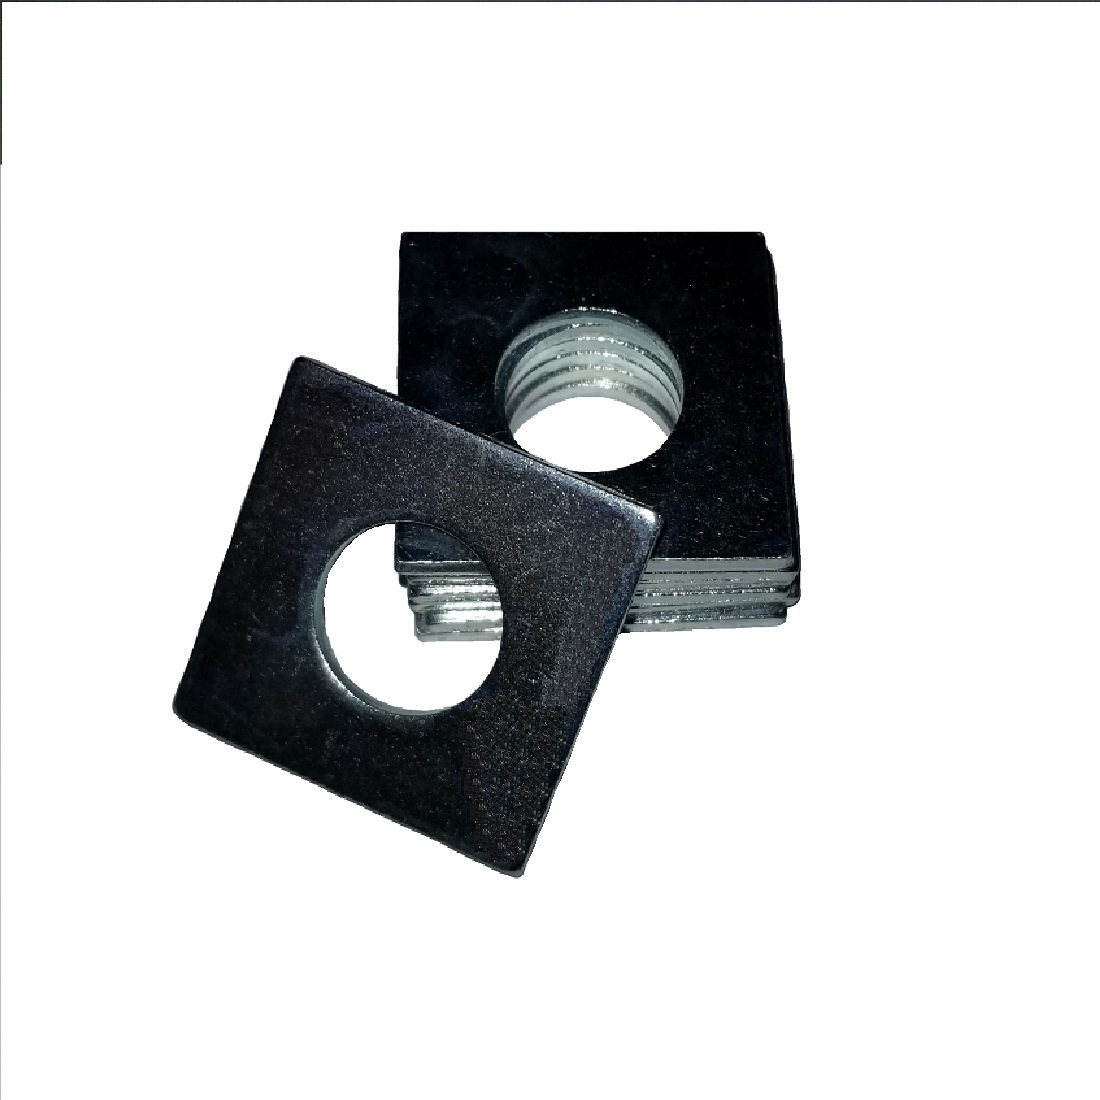 Square OD Washer - 0.110 ID, 0.220 OD, 0.030 Thick, Stainless - 300 Series